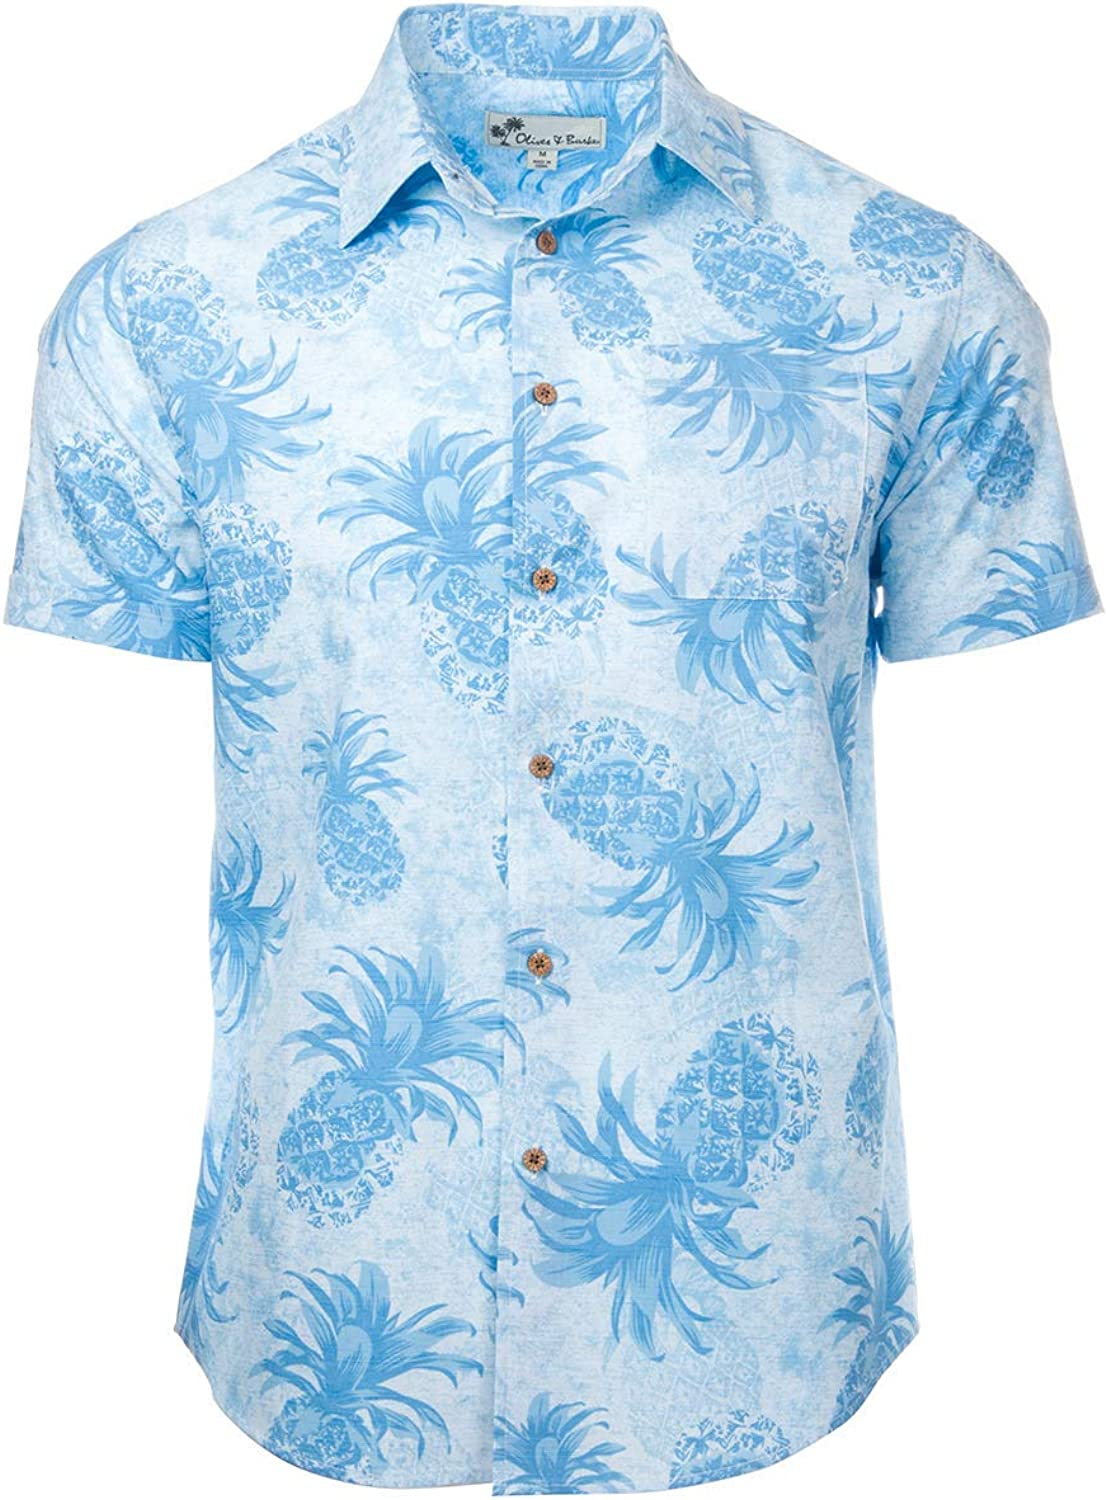 Oliver & Burke The Perfect Tropical Shirts for Mens Short Sleeve Cotton Button Down (Medium, Hawaiian Dream)